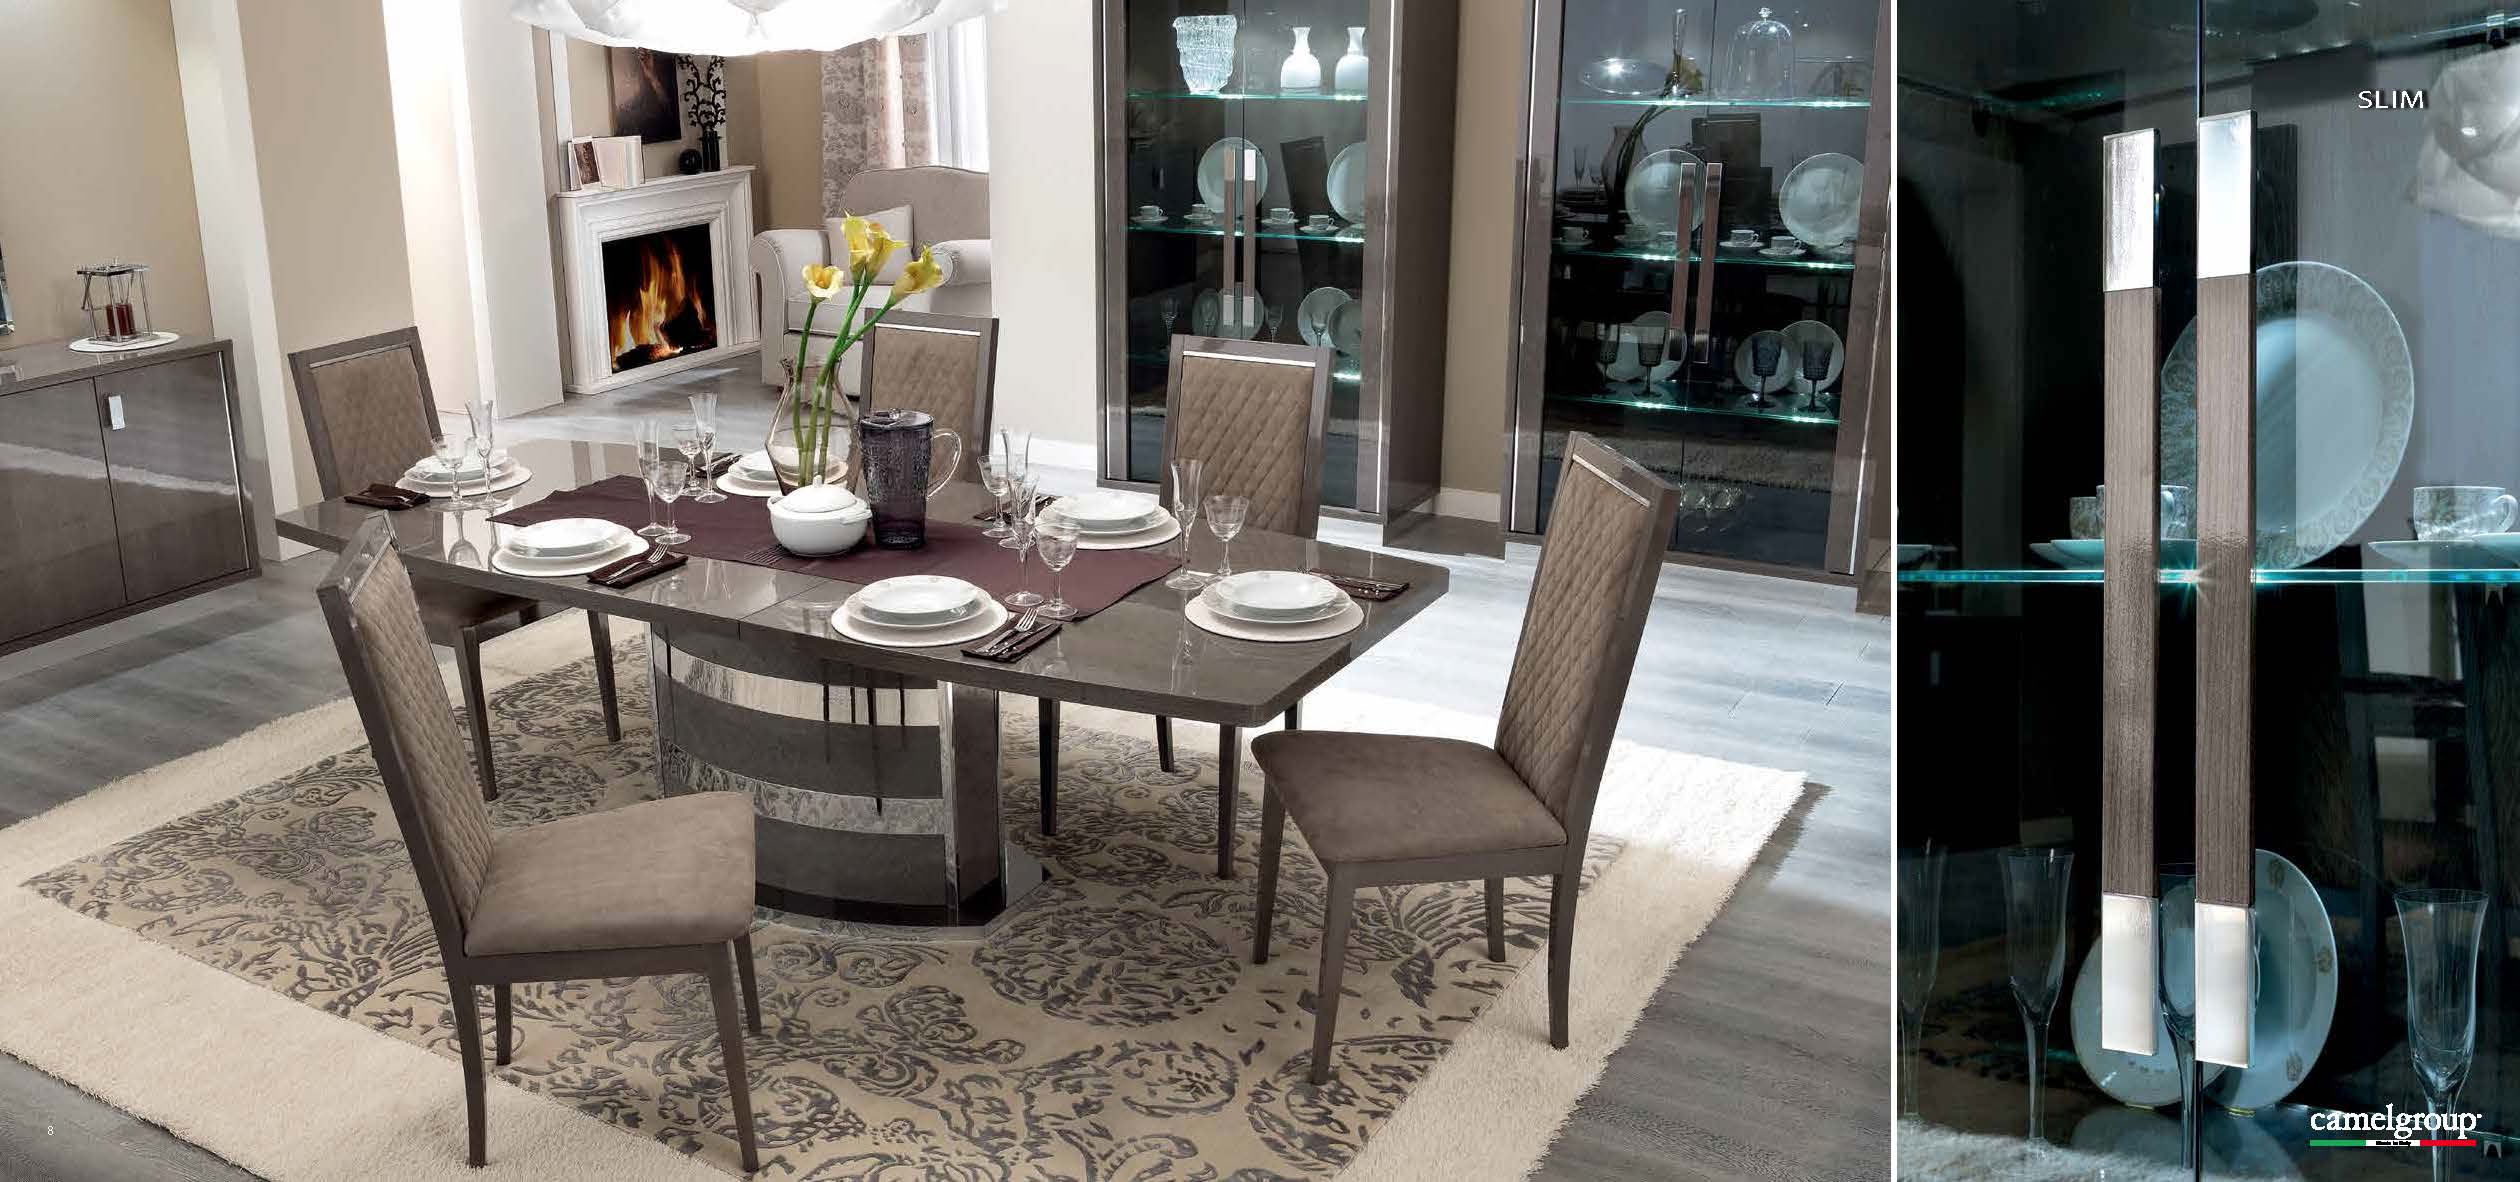 Modern formal dining room sets - Dining Room Furniture Modern Formal Dining Sets Platinum Slim Dining View Larger Image More Images And Dimensions Seat